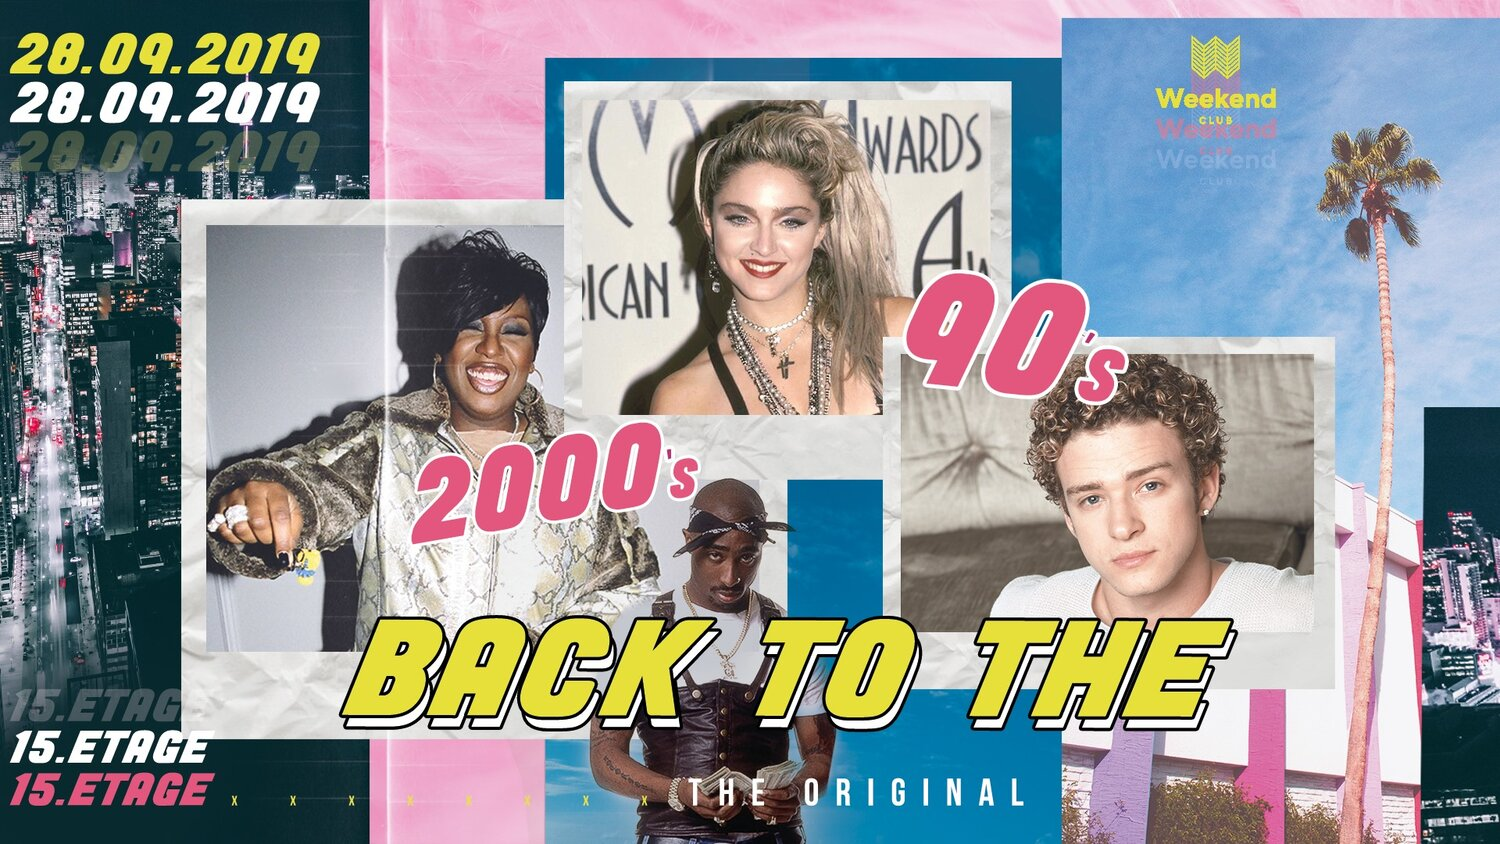 Back to the 90's - Big Season Opening  The best music decade is in the center! Always with an exceptional, international line up a unique atmosphere is guaranteed.  Let us take you on the journey through time and look forward to the best sounds and a unique view over the city